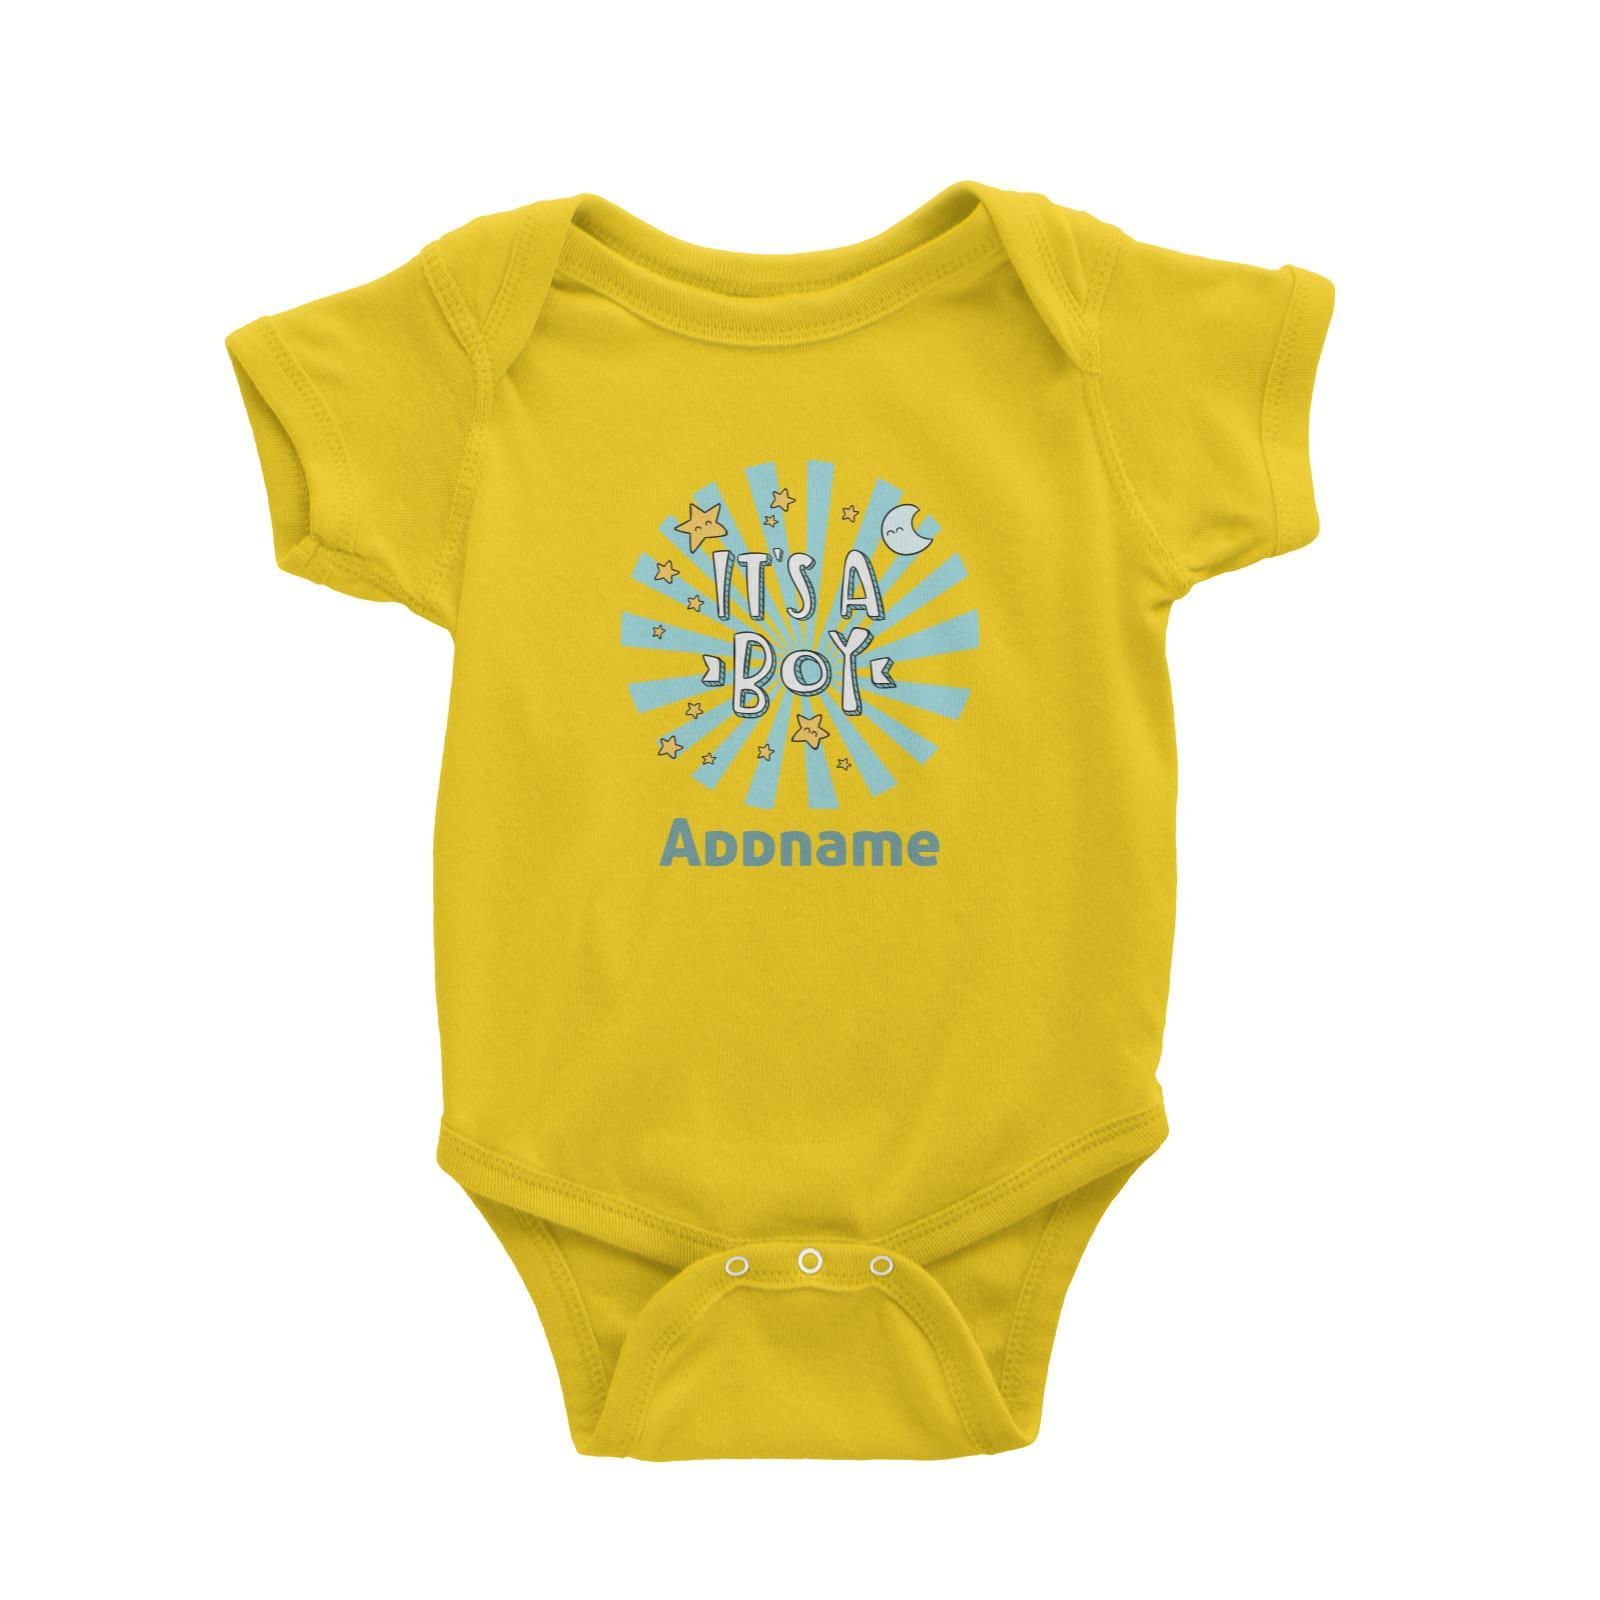 Babywears.my It's A Boy Addname with Stars and Moon T-Shirt Personalizable Designs For Boys Newborn